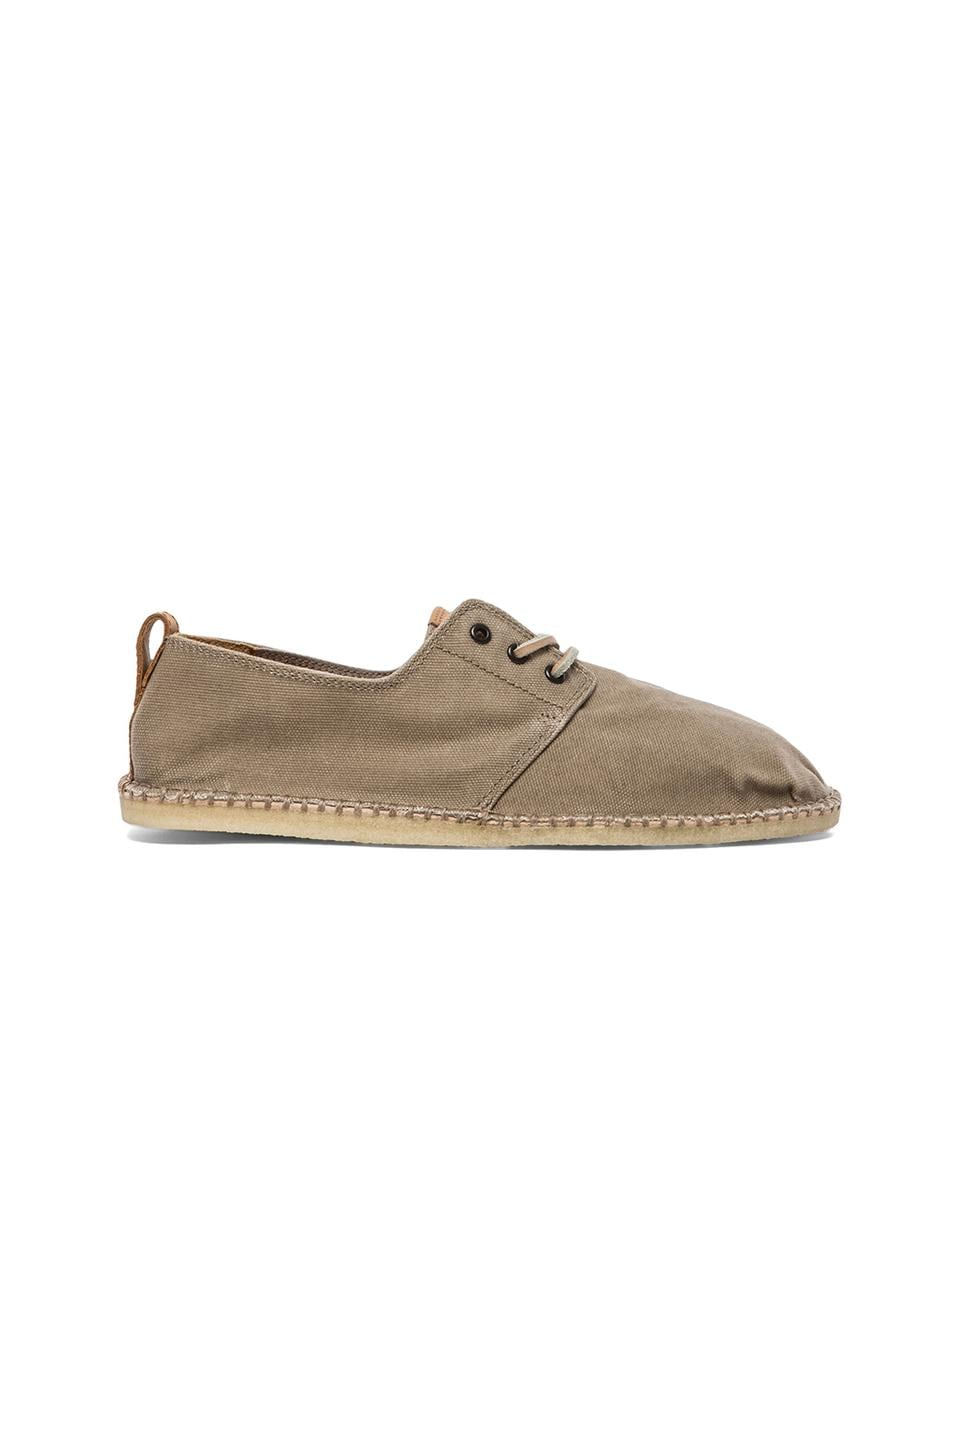 Clarks Originals Pikko Solo in Sand